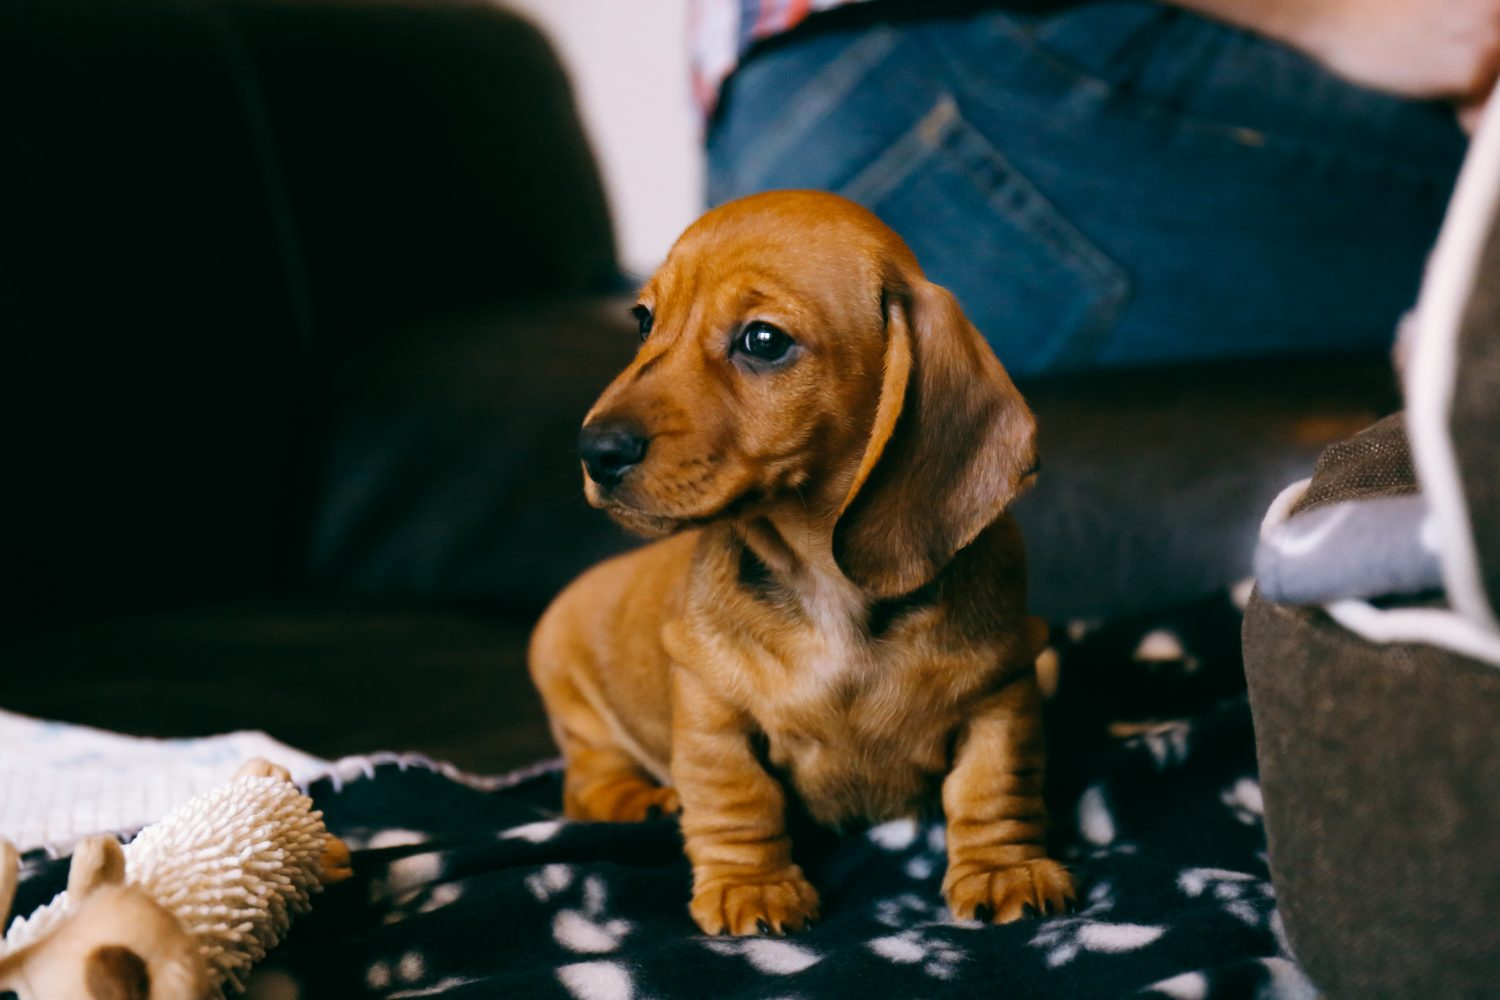 Bringing Home A New Puppy: 9 Tips to Prep Your House